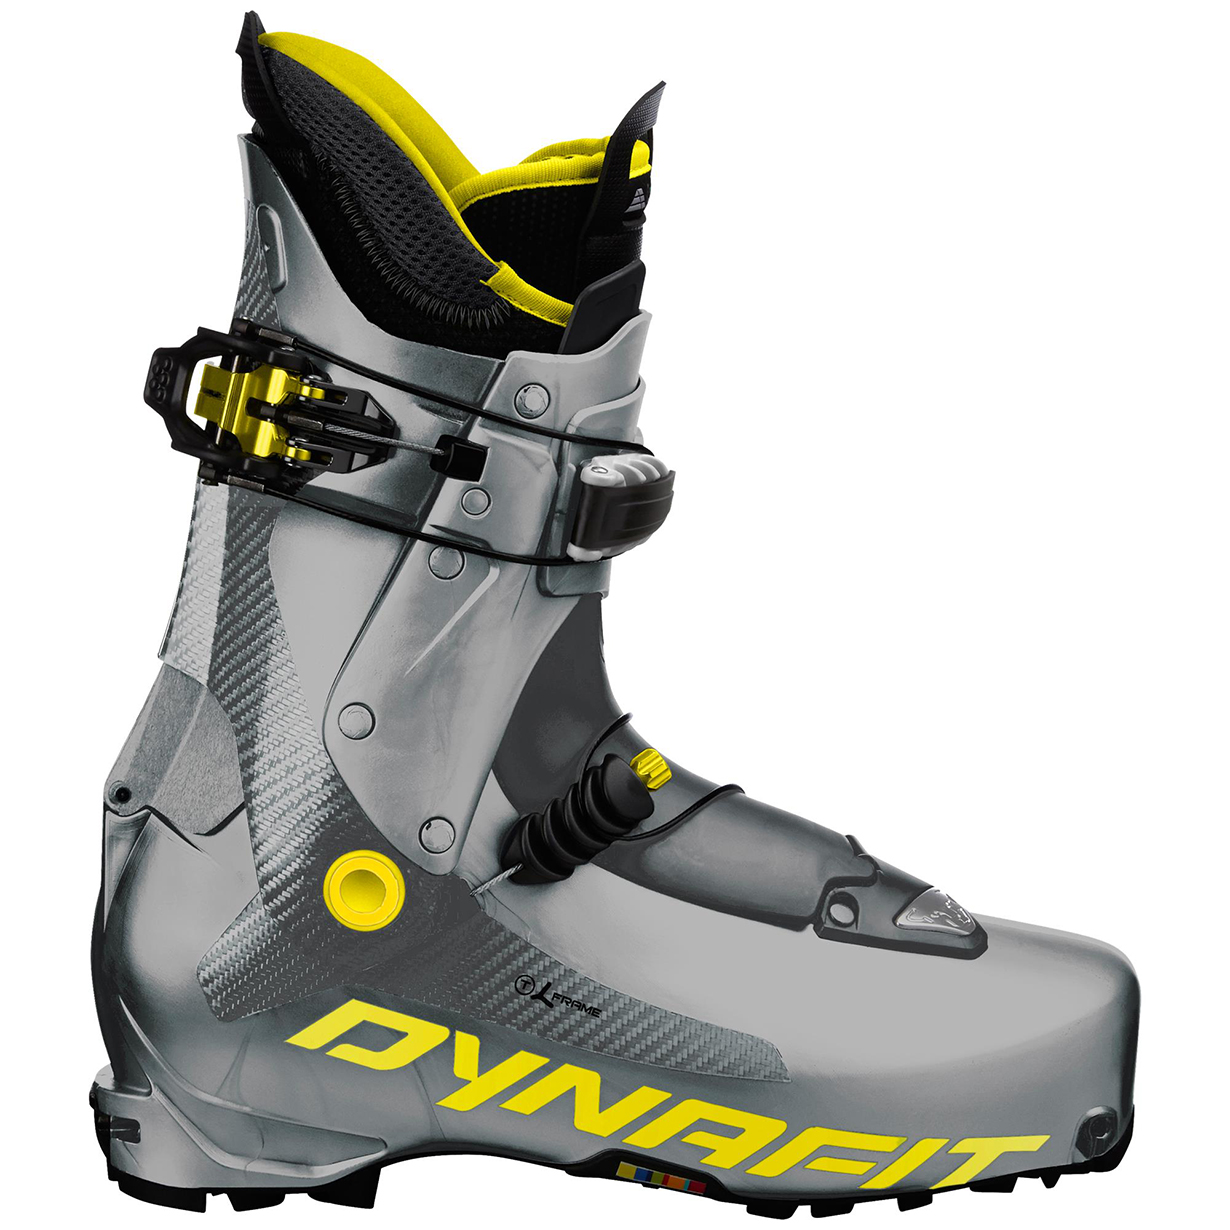 Paul Forward reviews the 2017-2018 Dynafit TLT7 Performance for Blister Gear Review